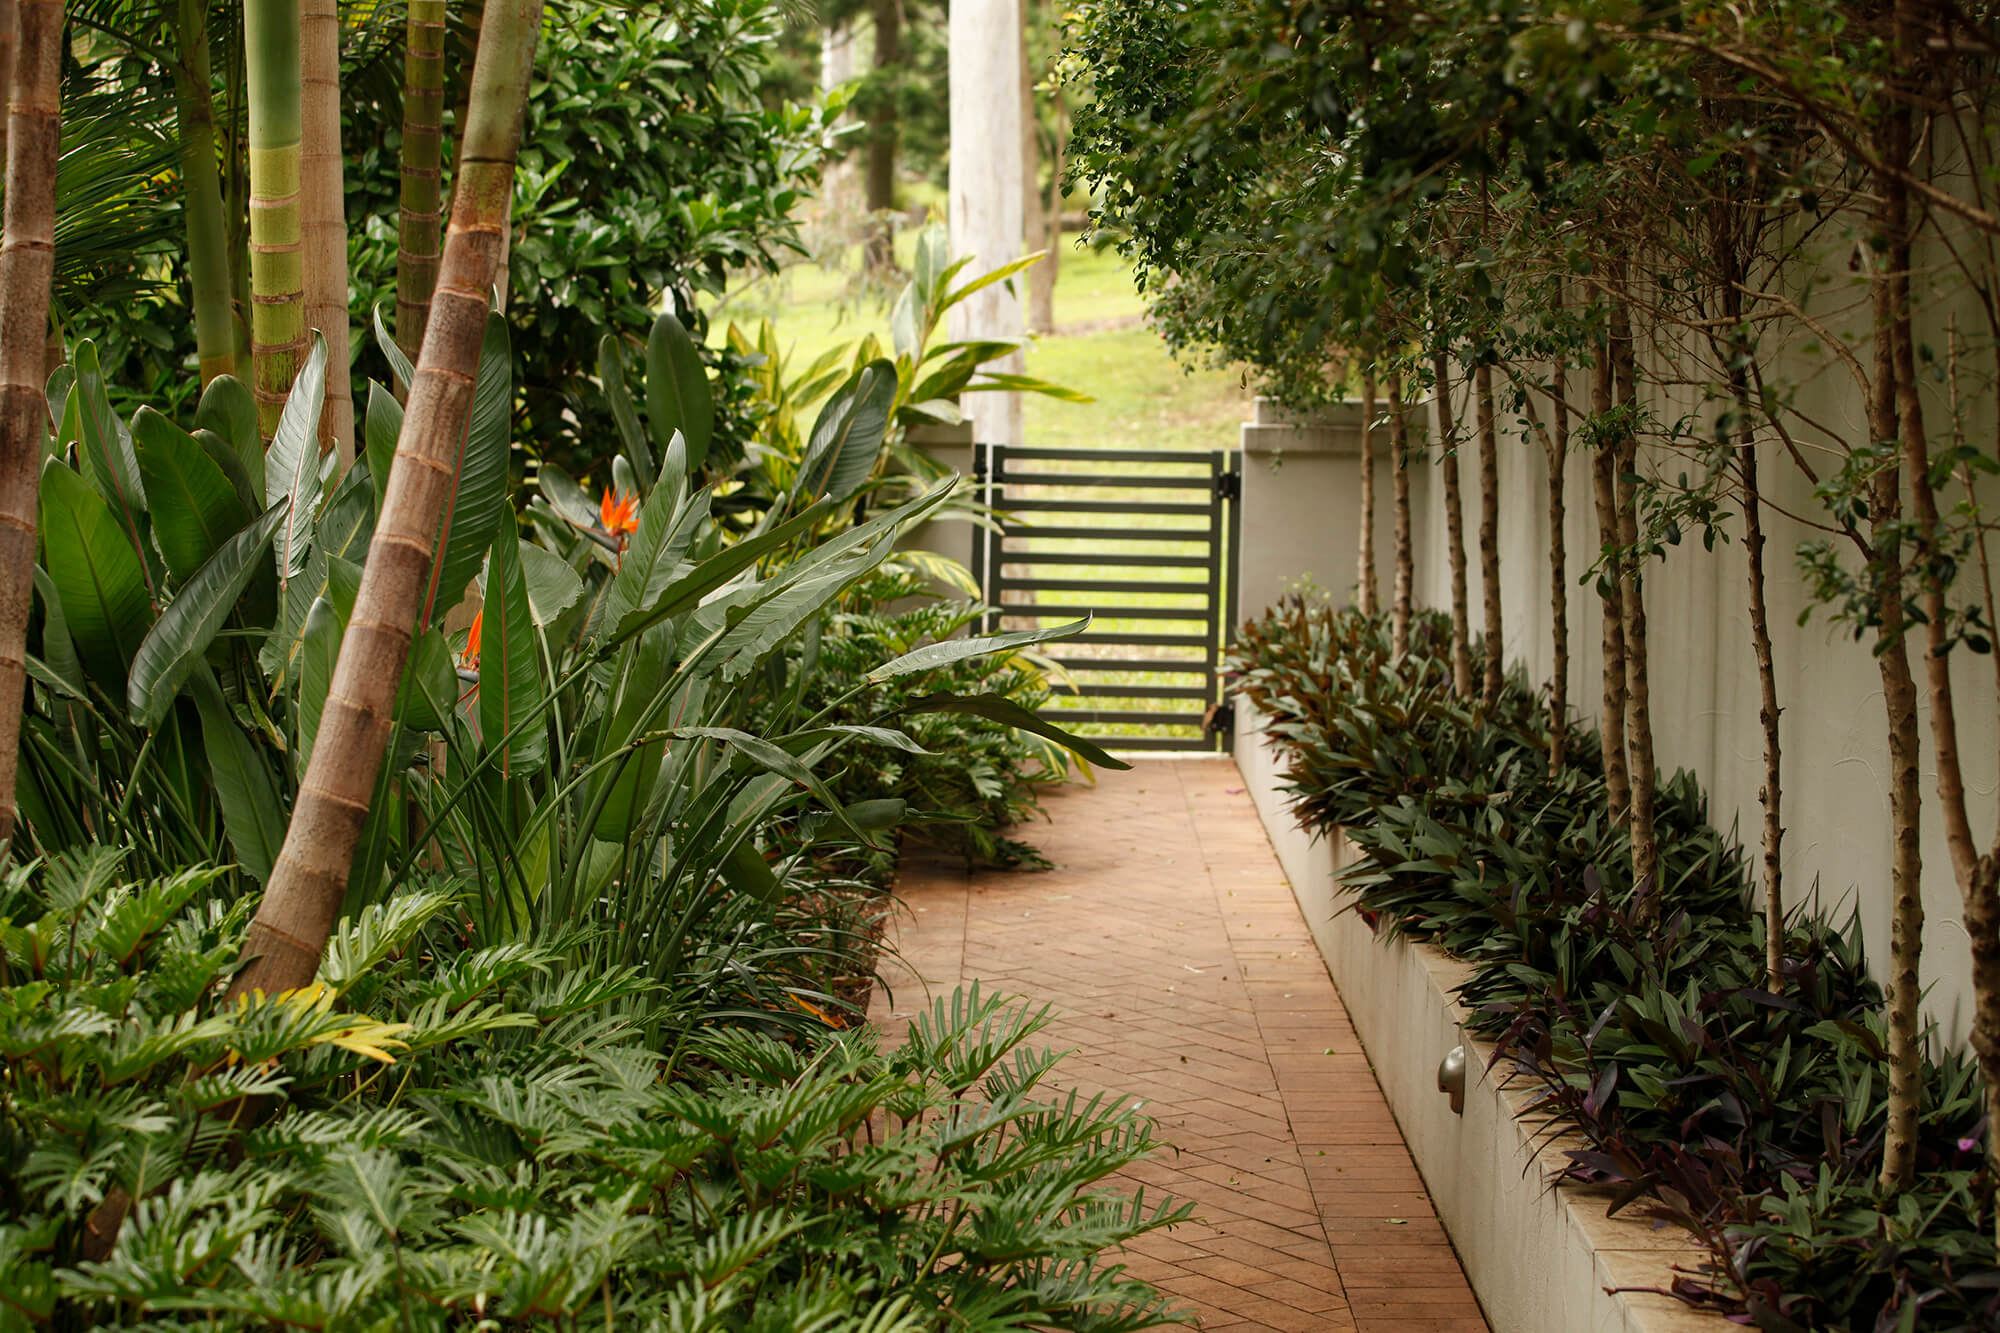 coorparoo tropical landscaped walkway